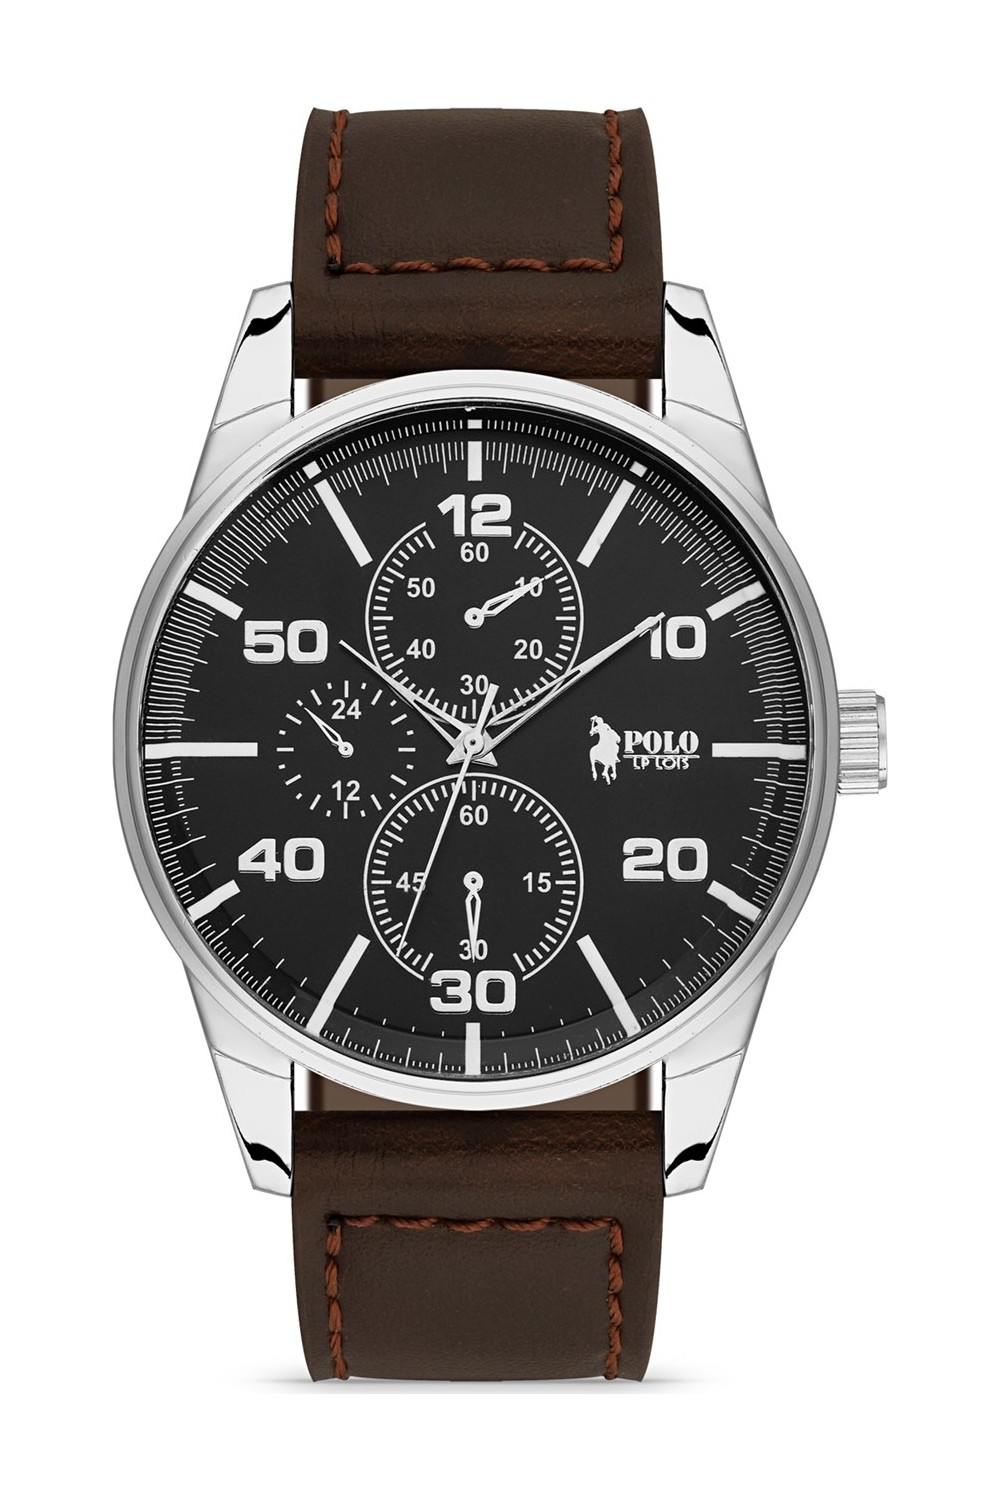 Luis Polo Men's Watches P1018-EK-05